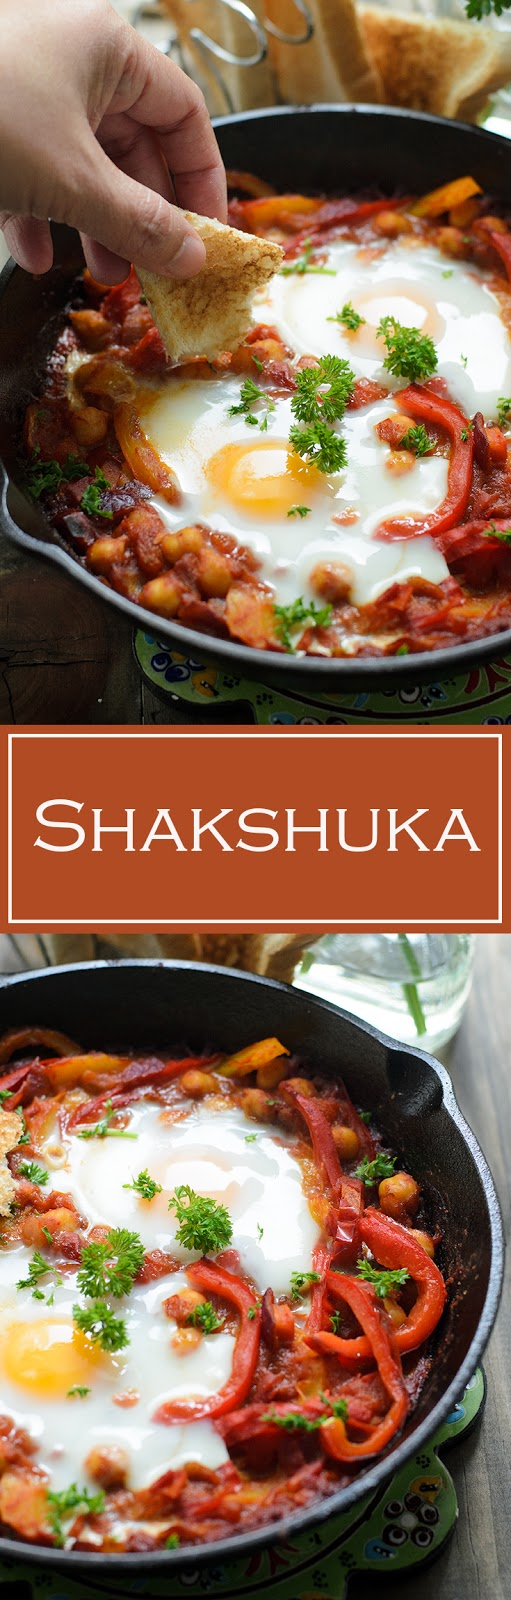 Easy Shakshuka Recipe. Delicious shakshuka serve for breakfast with either toast, pita bread or Lebanese bread.